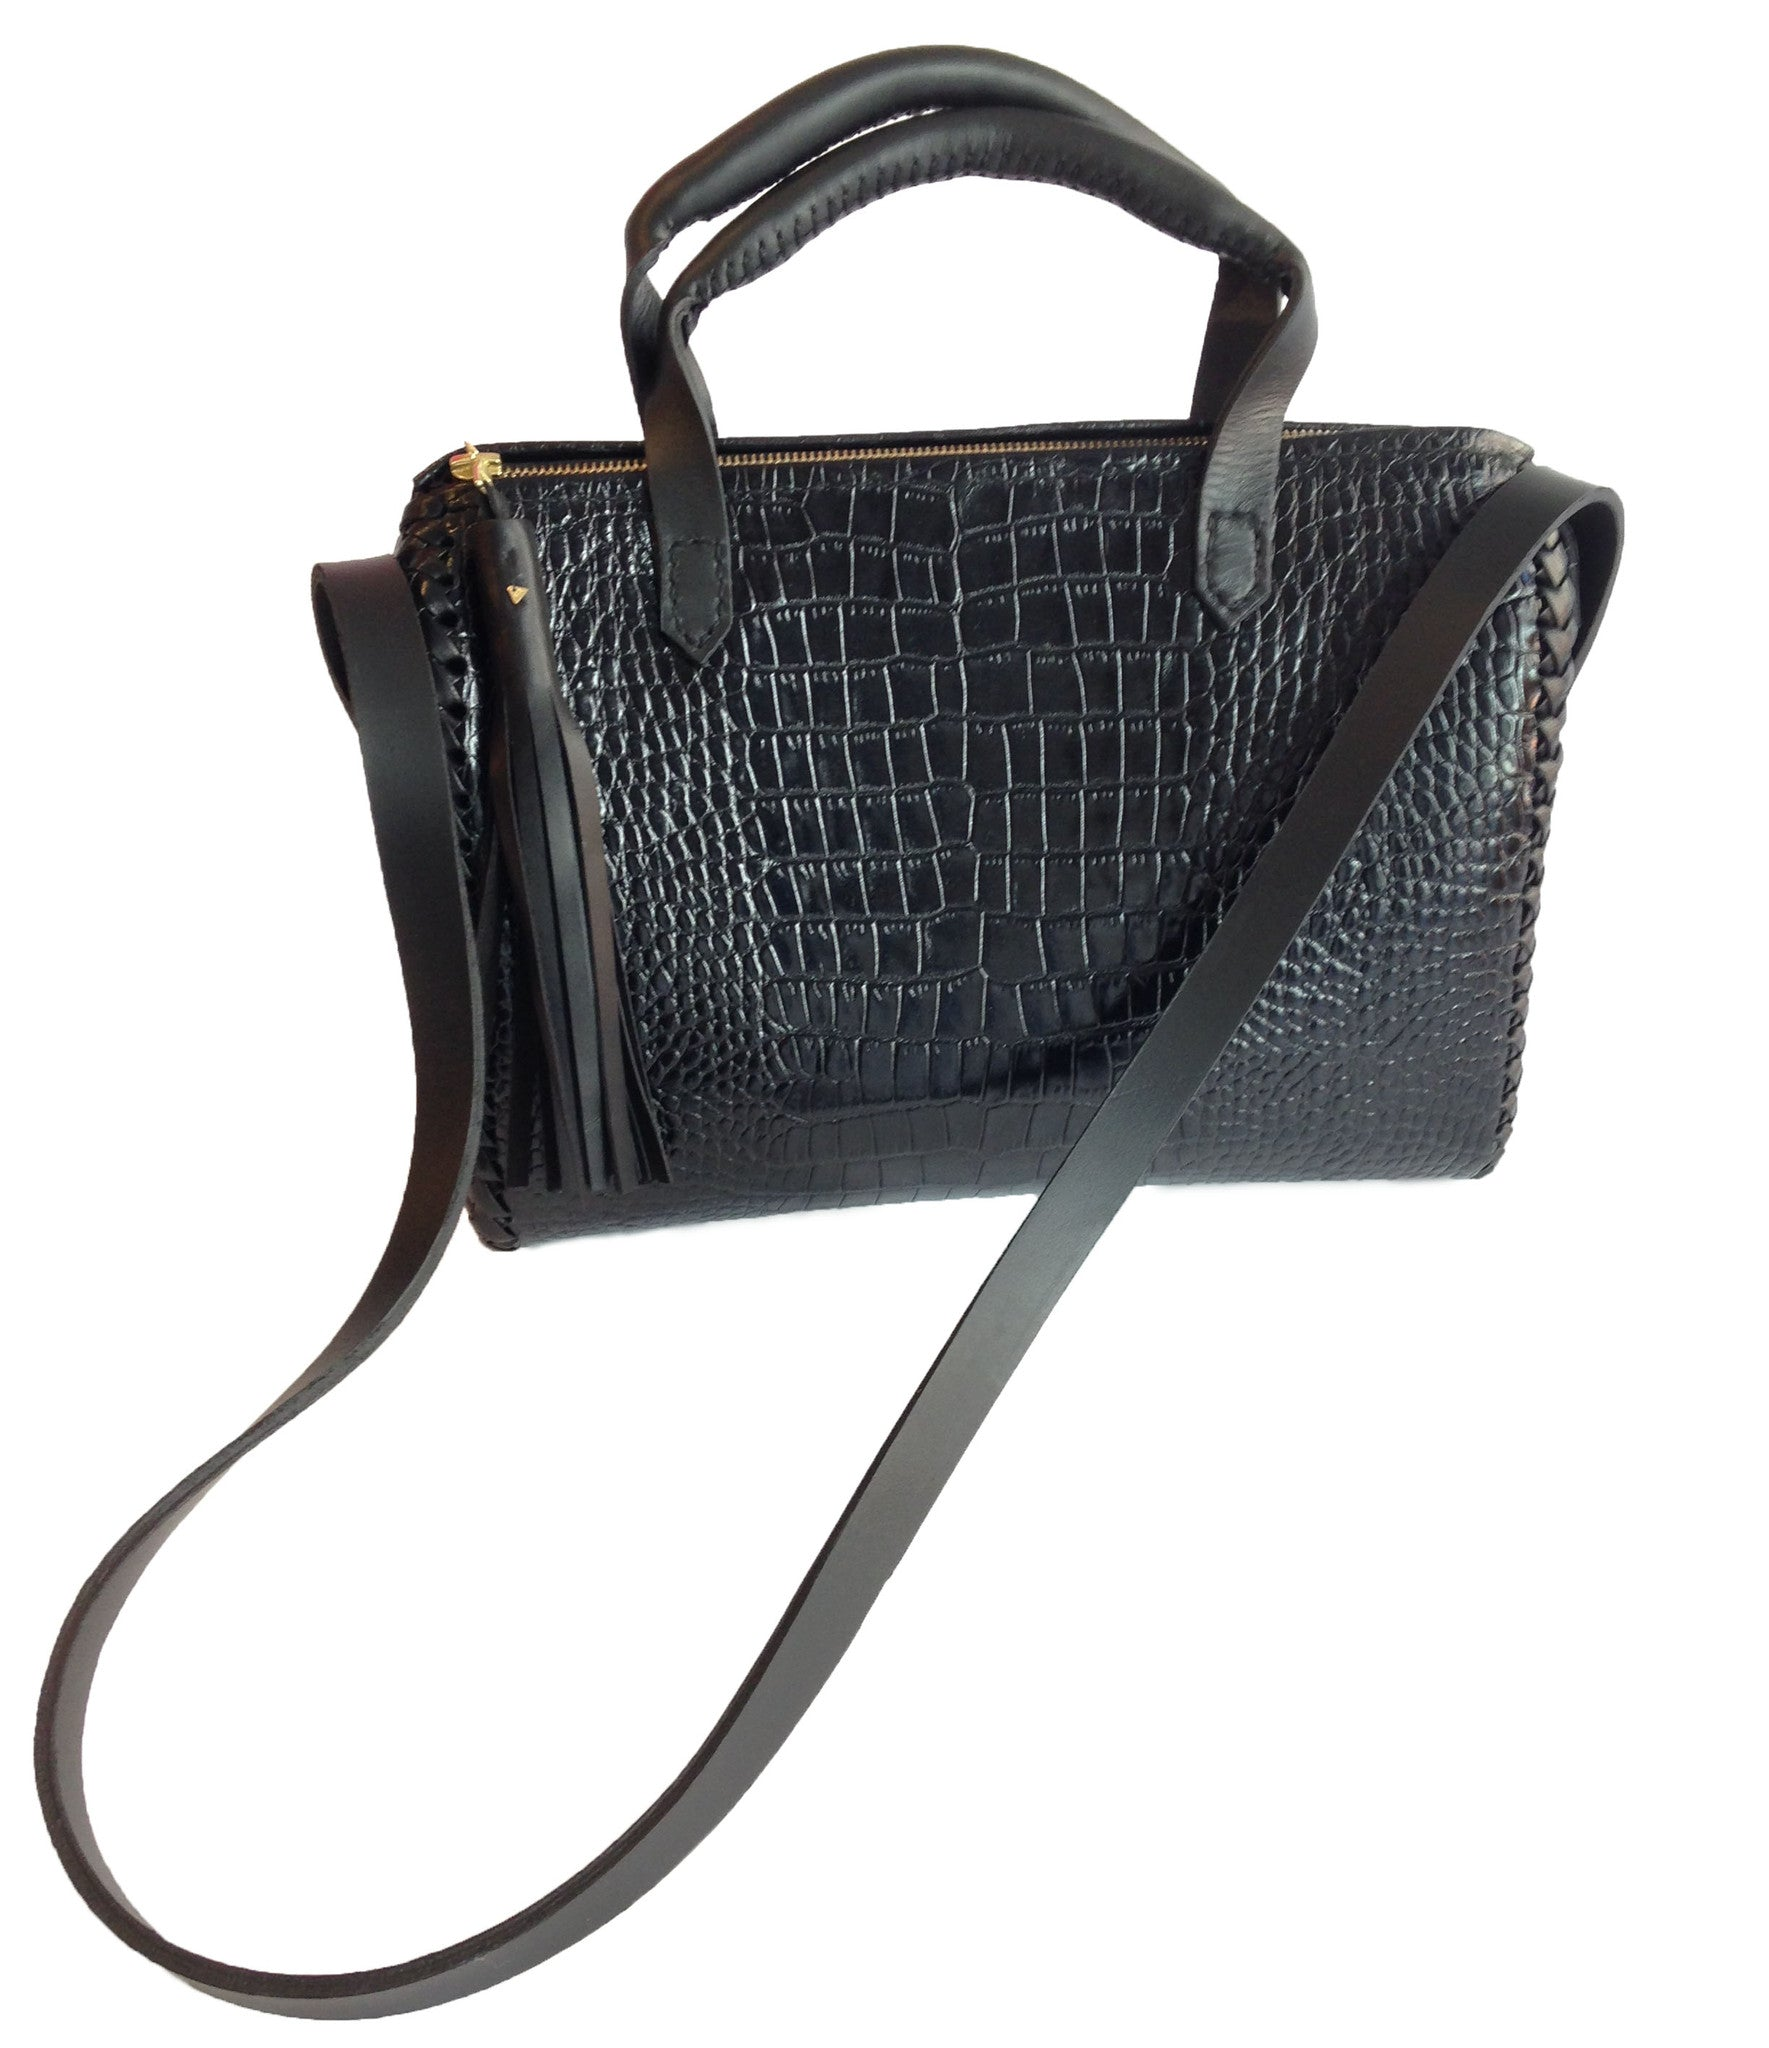 Leather Doctor Bag Wendy Nichol Handbags Handmade in NYC Cross body everyday bag Black Embossed  Croc Crocodile Alligator Cowhide Leather